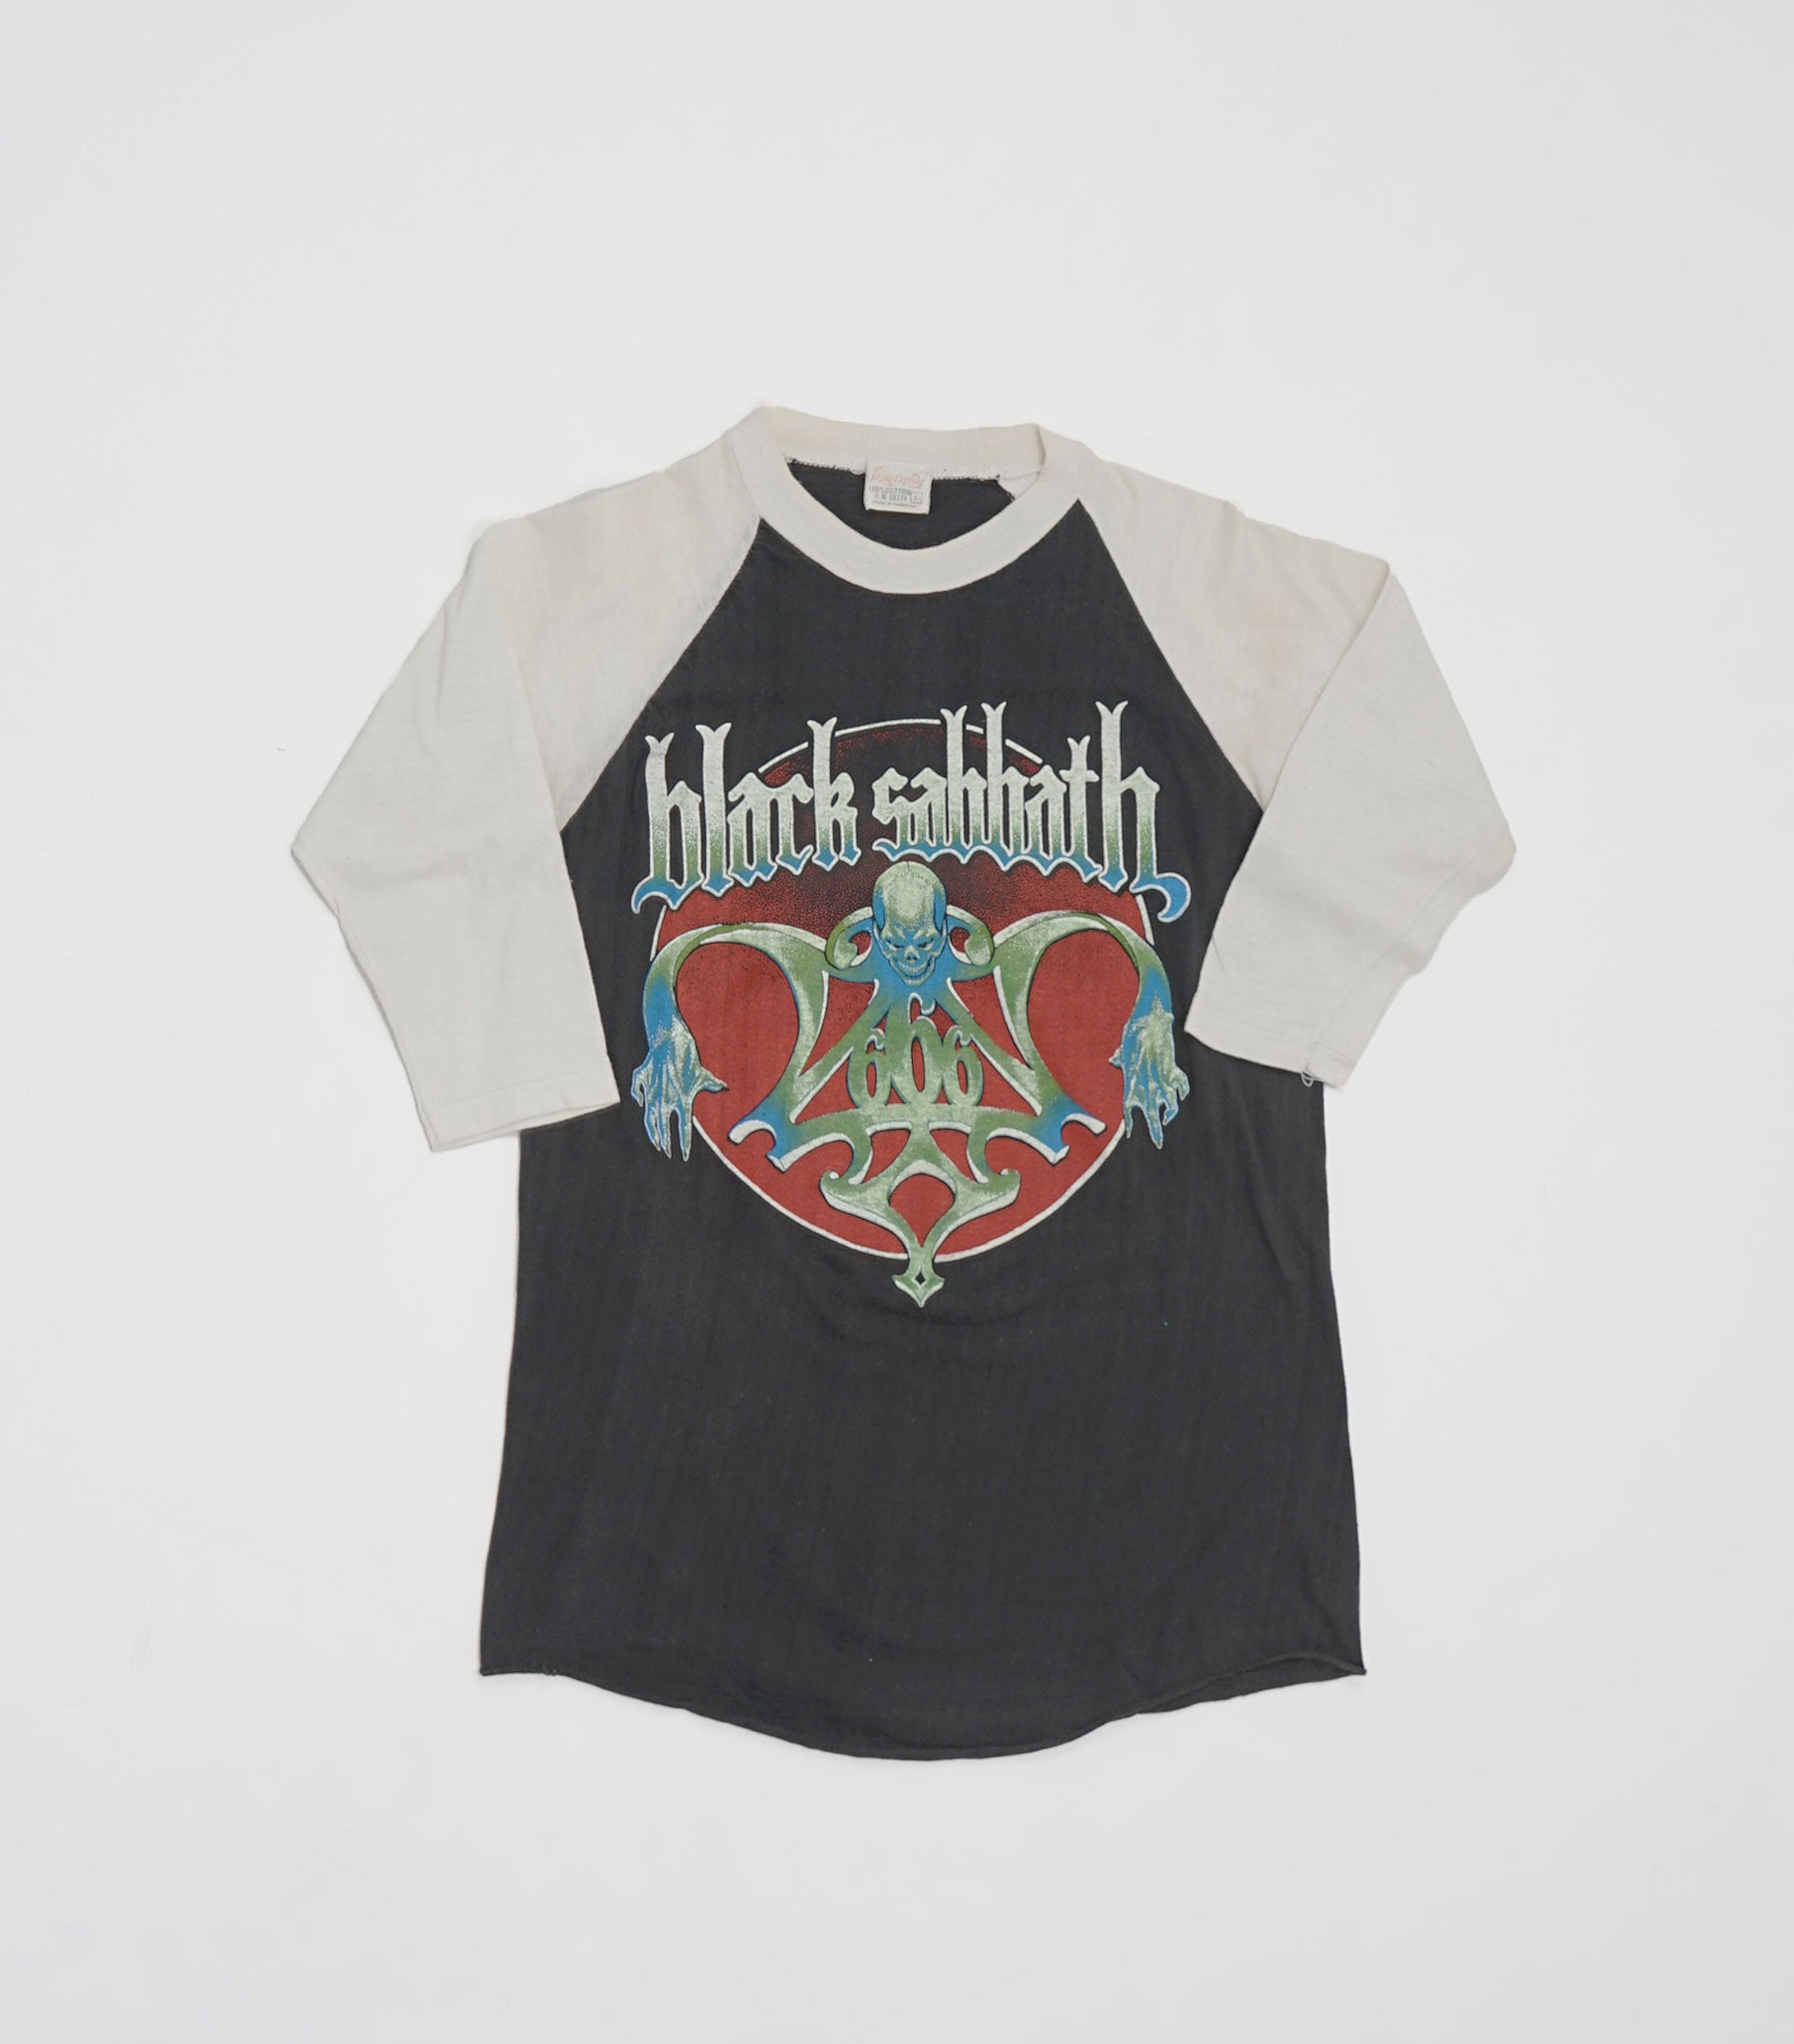 Black Sabbath Baseball Tee